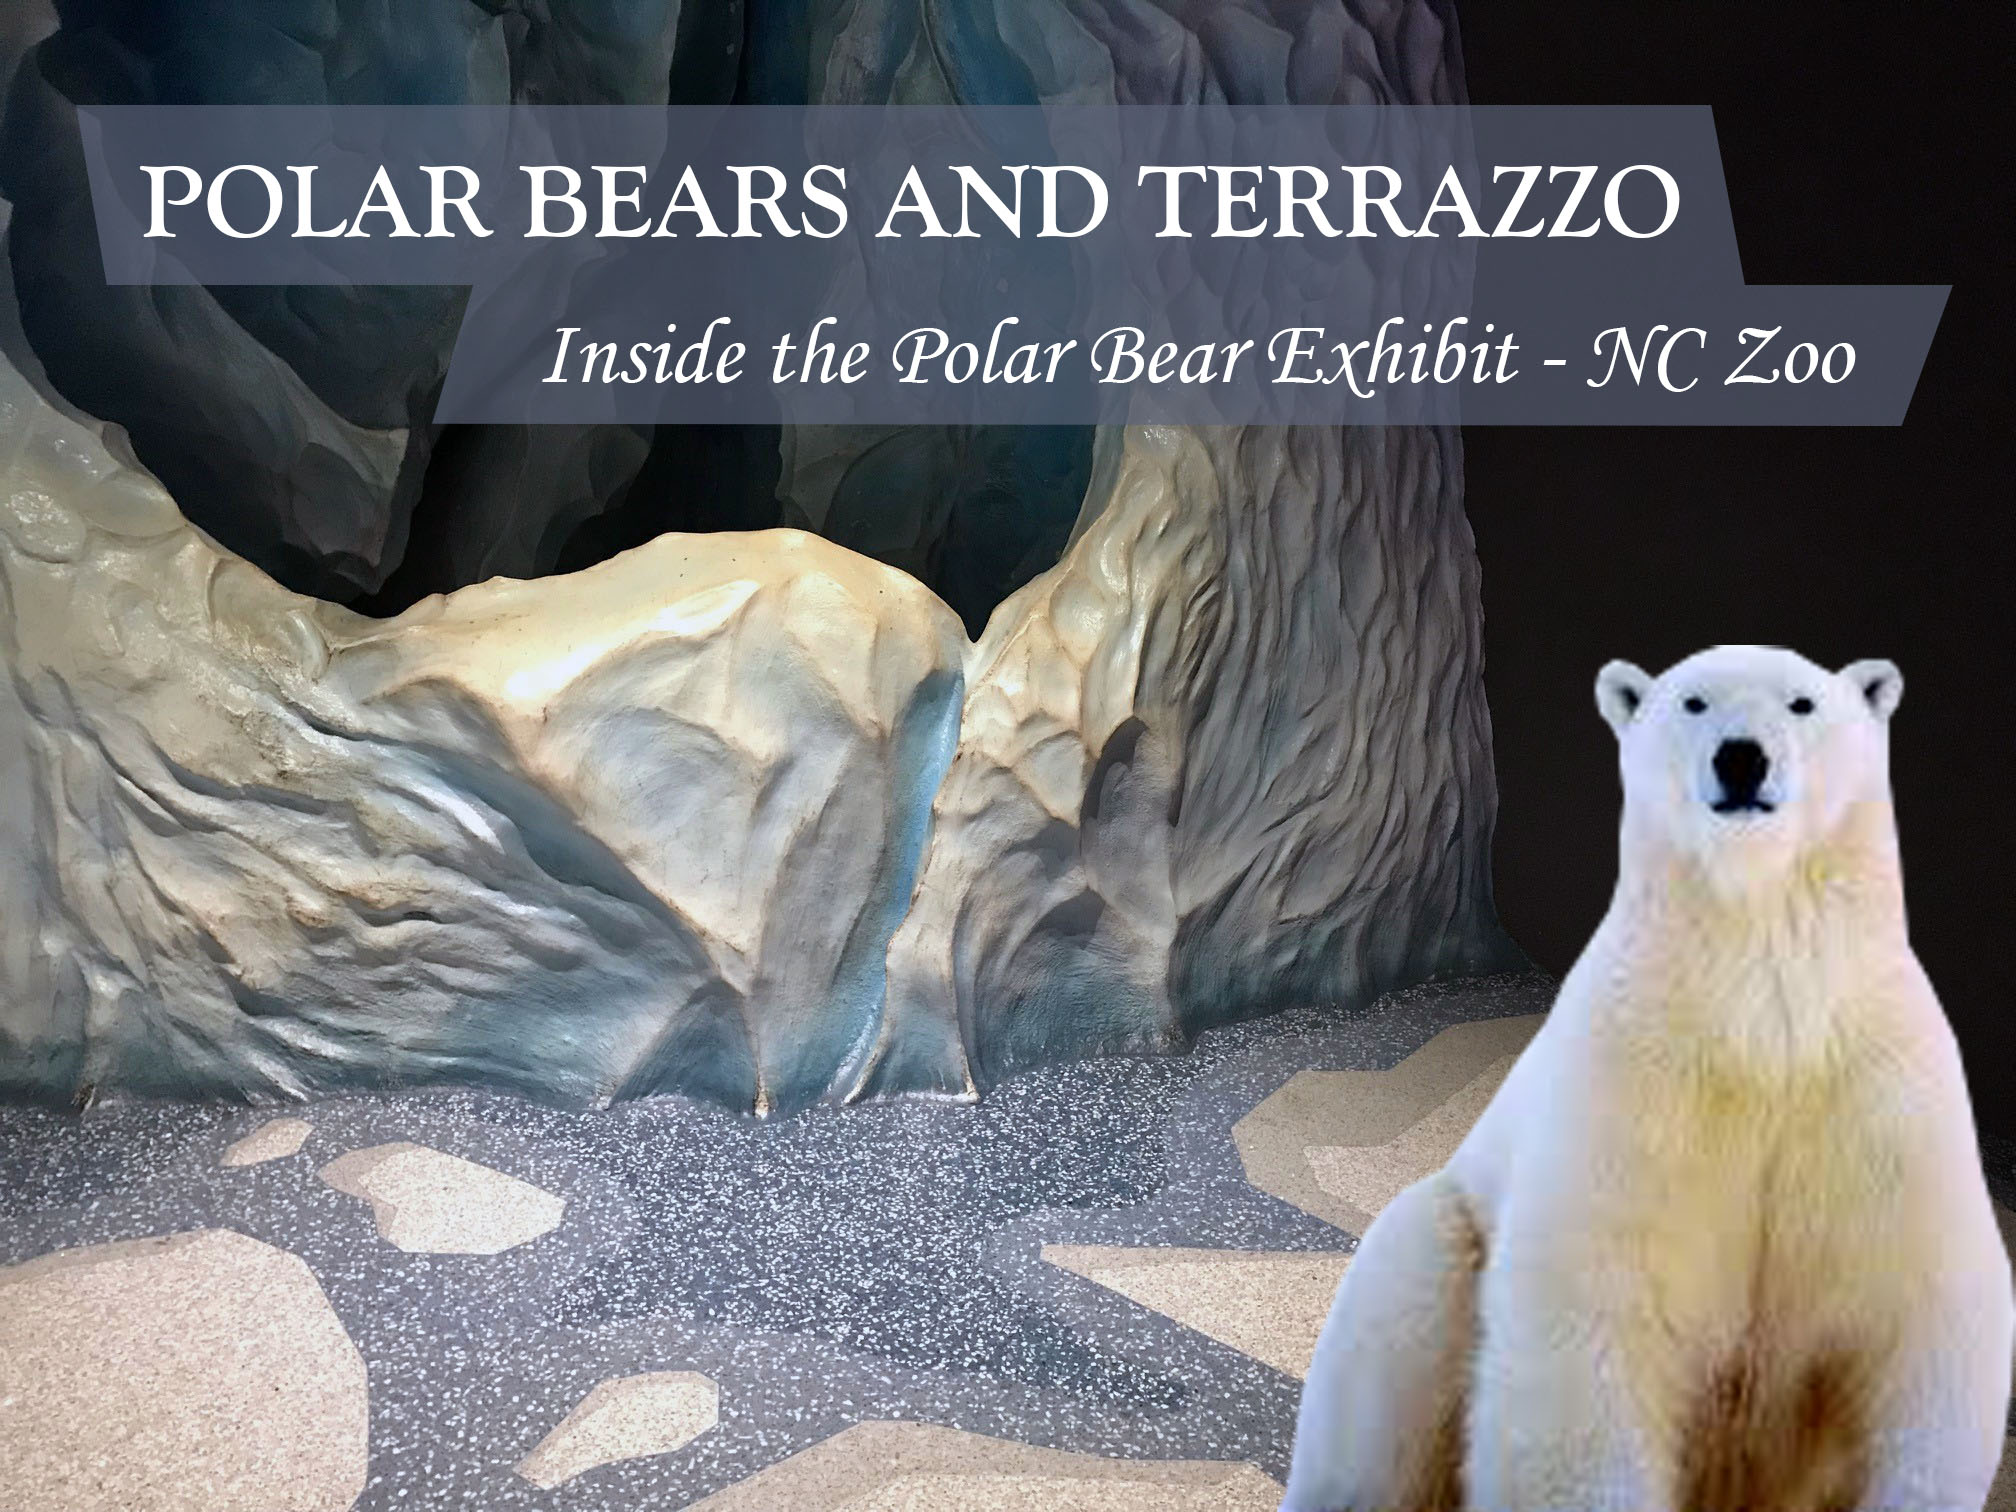 Polar Bears and Terrazzo Inside the Polar Bear Exhibit at the North Carolina Zoo